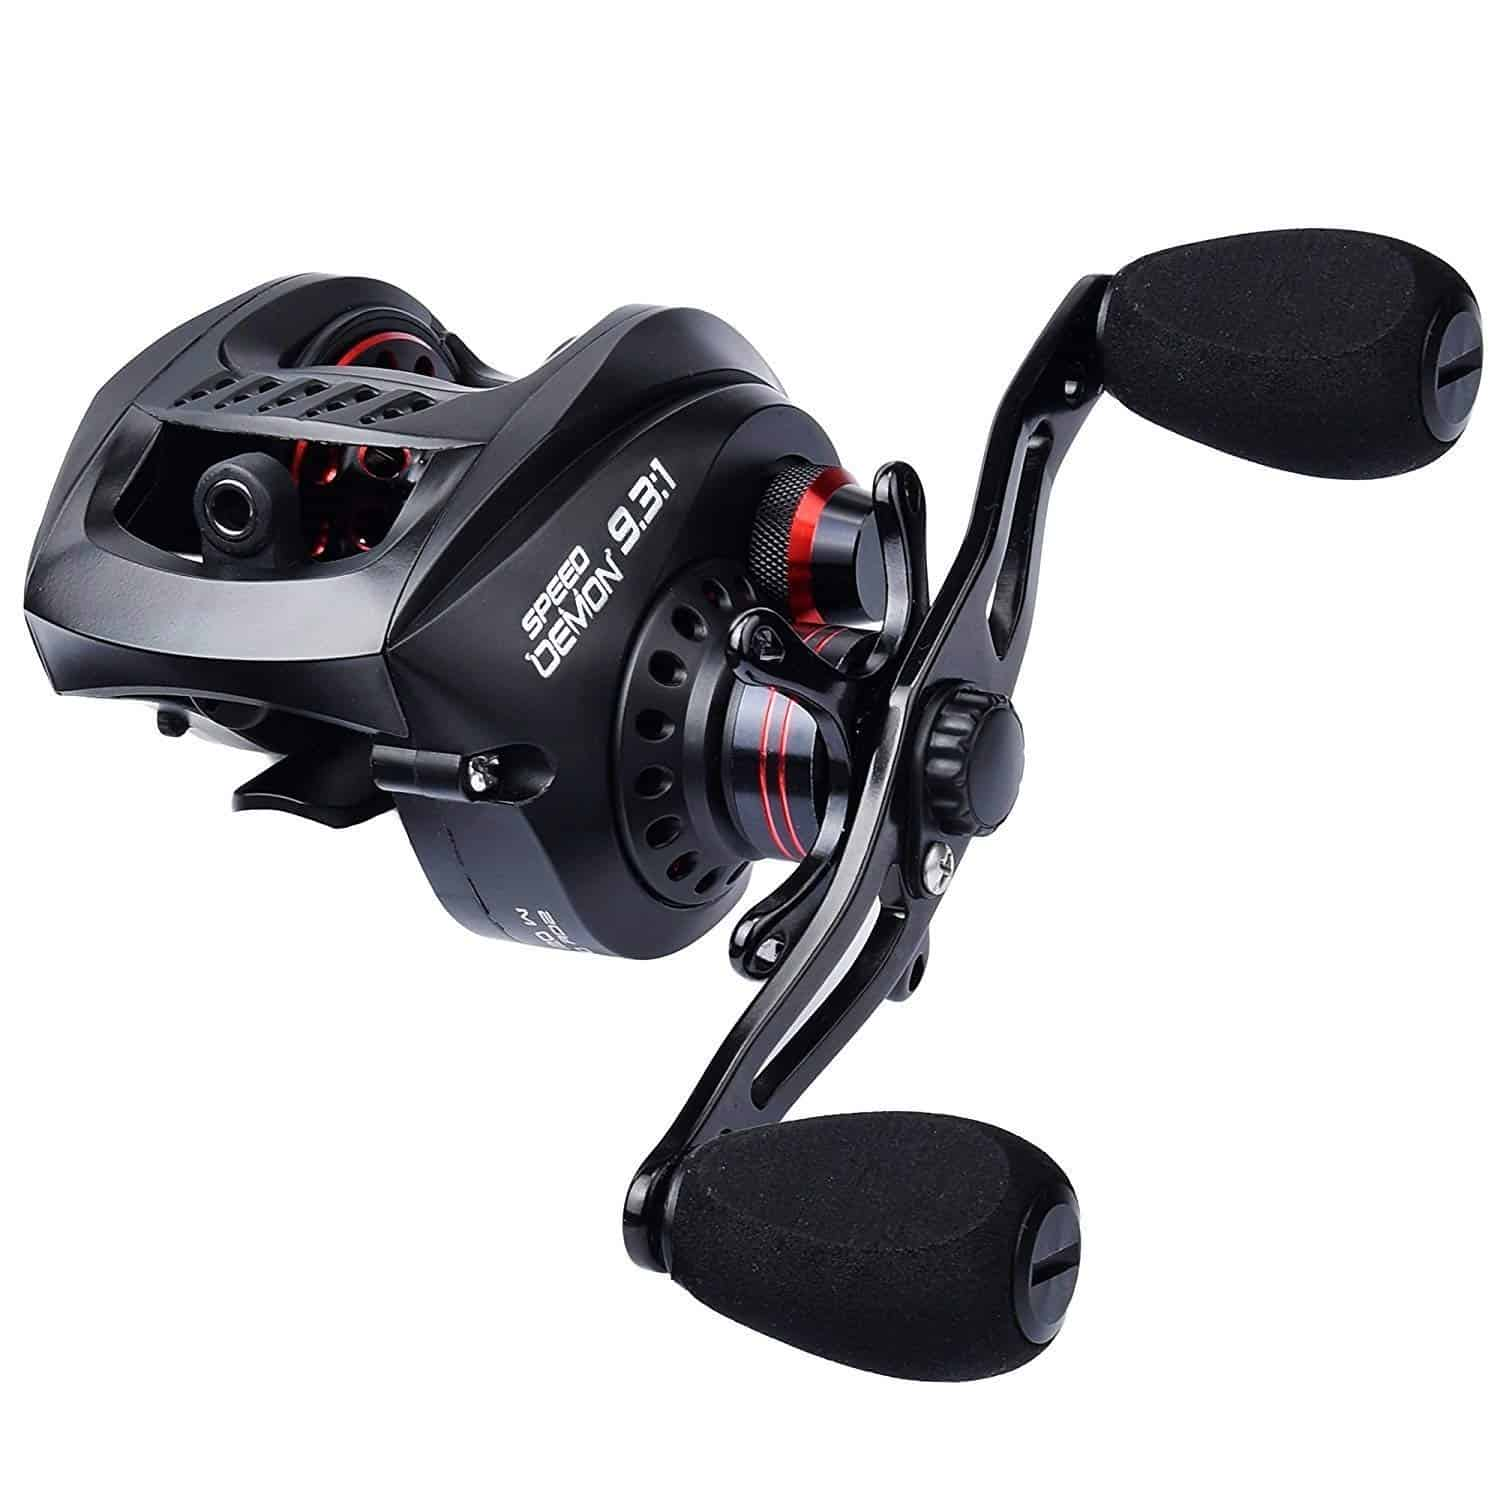 KastKing Speed Demon 9.3:1 Baitcasting Fishing Reel